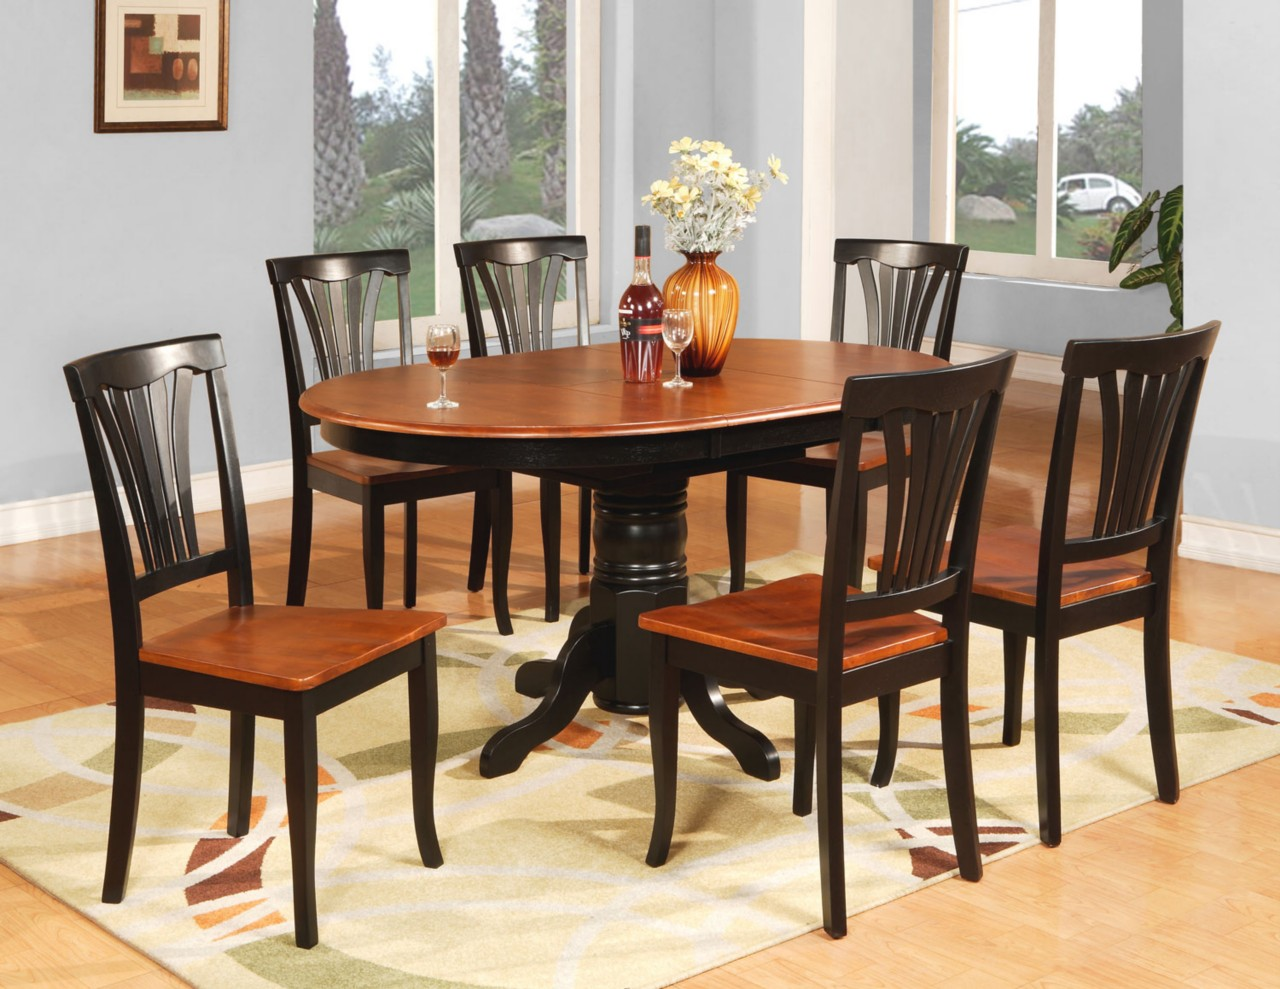 Wonderful Oval Kitchen Table and Chairs Sets 1280 x 989 · 245 kB · jpeg